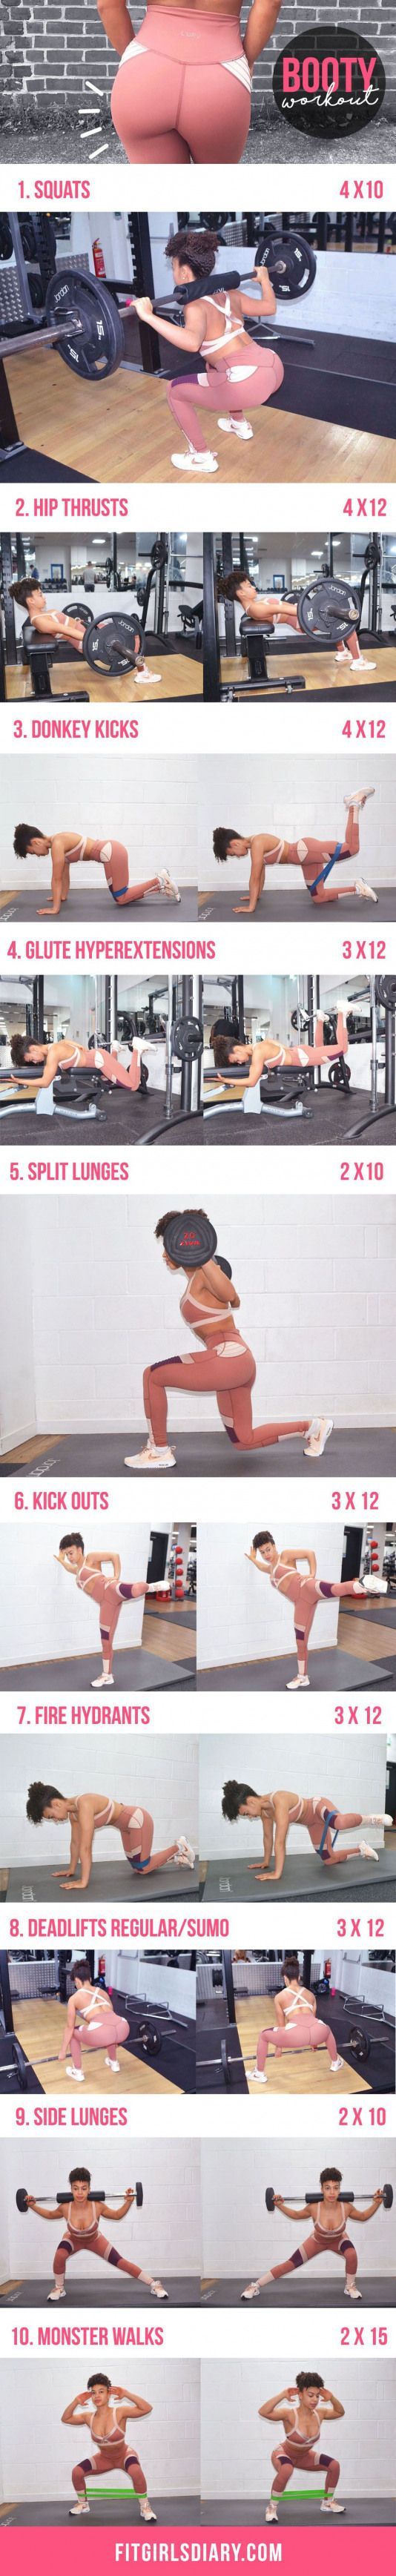 10 Best Glutes Exercises To Build Stronger  Bigger Booty -1896